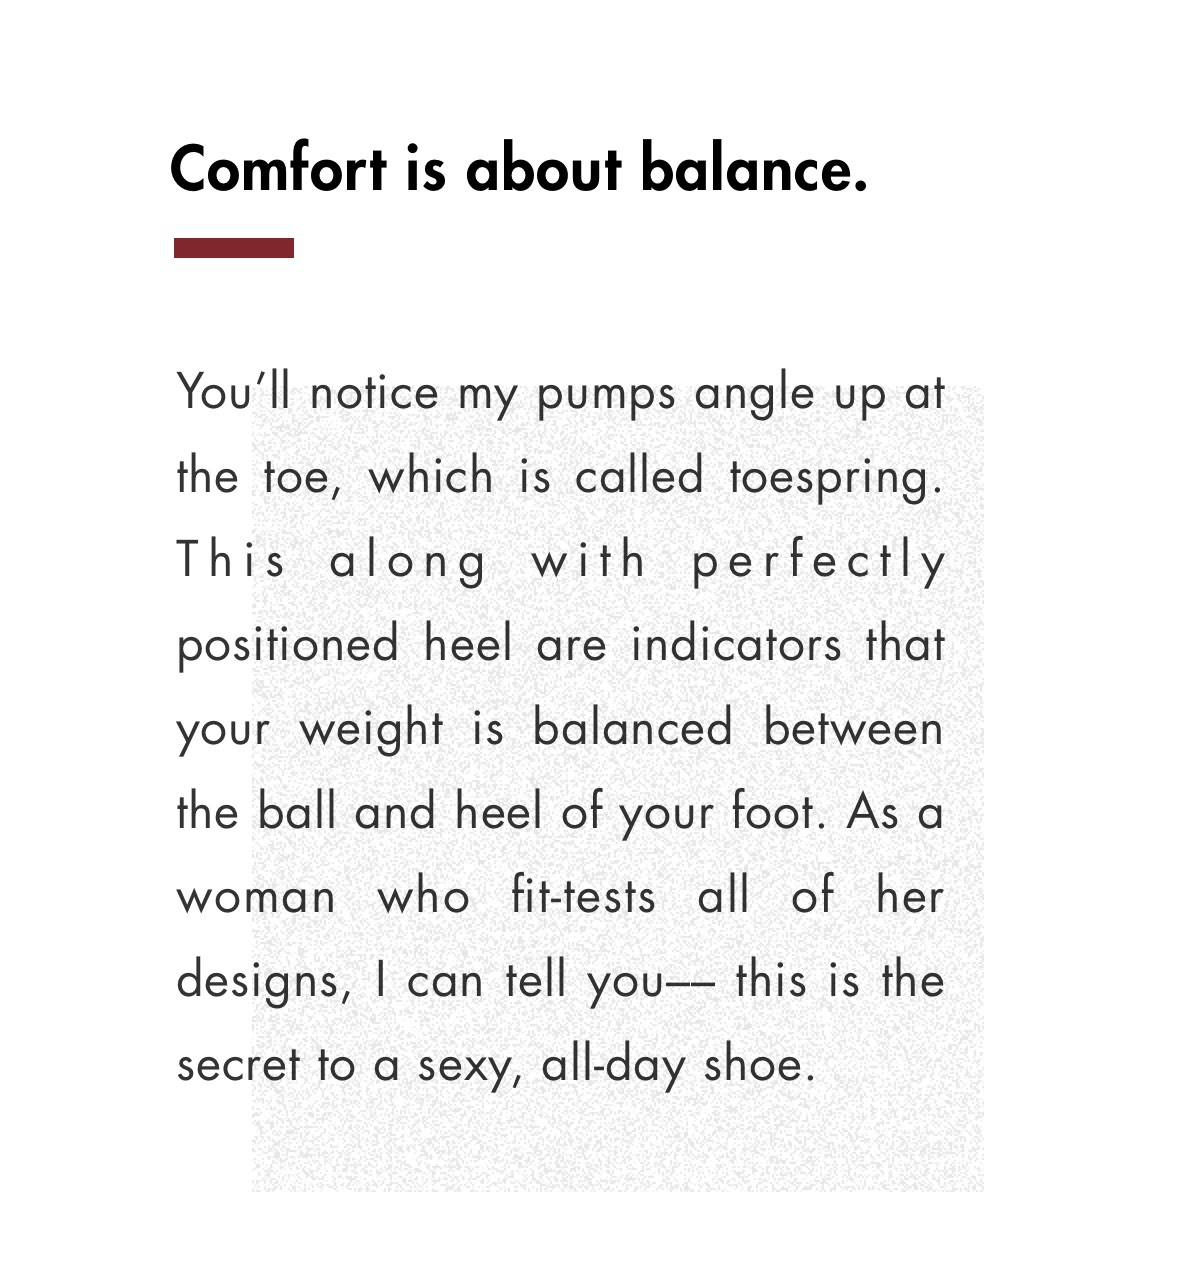 Comfort is about balance